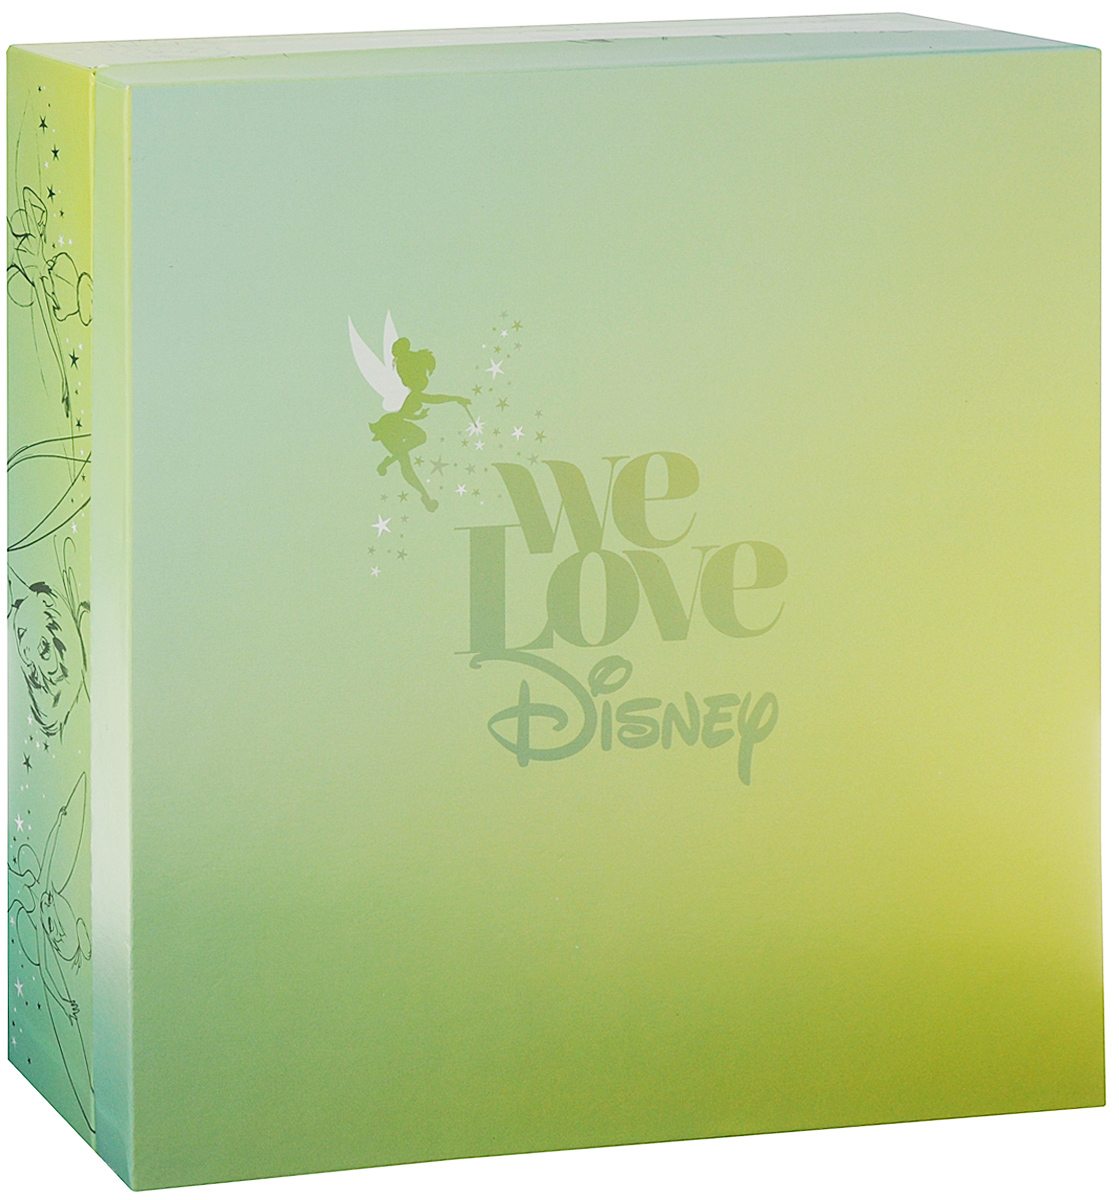 We Love Disney. Limited Edition (2 CD + DVD + 4 LP) we love electro iv 2 cd